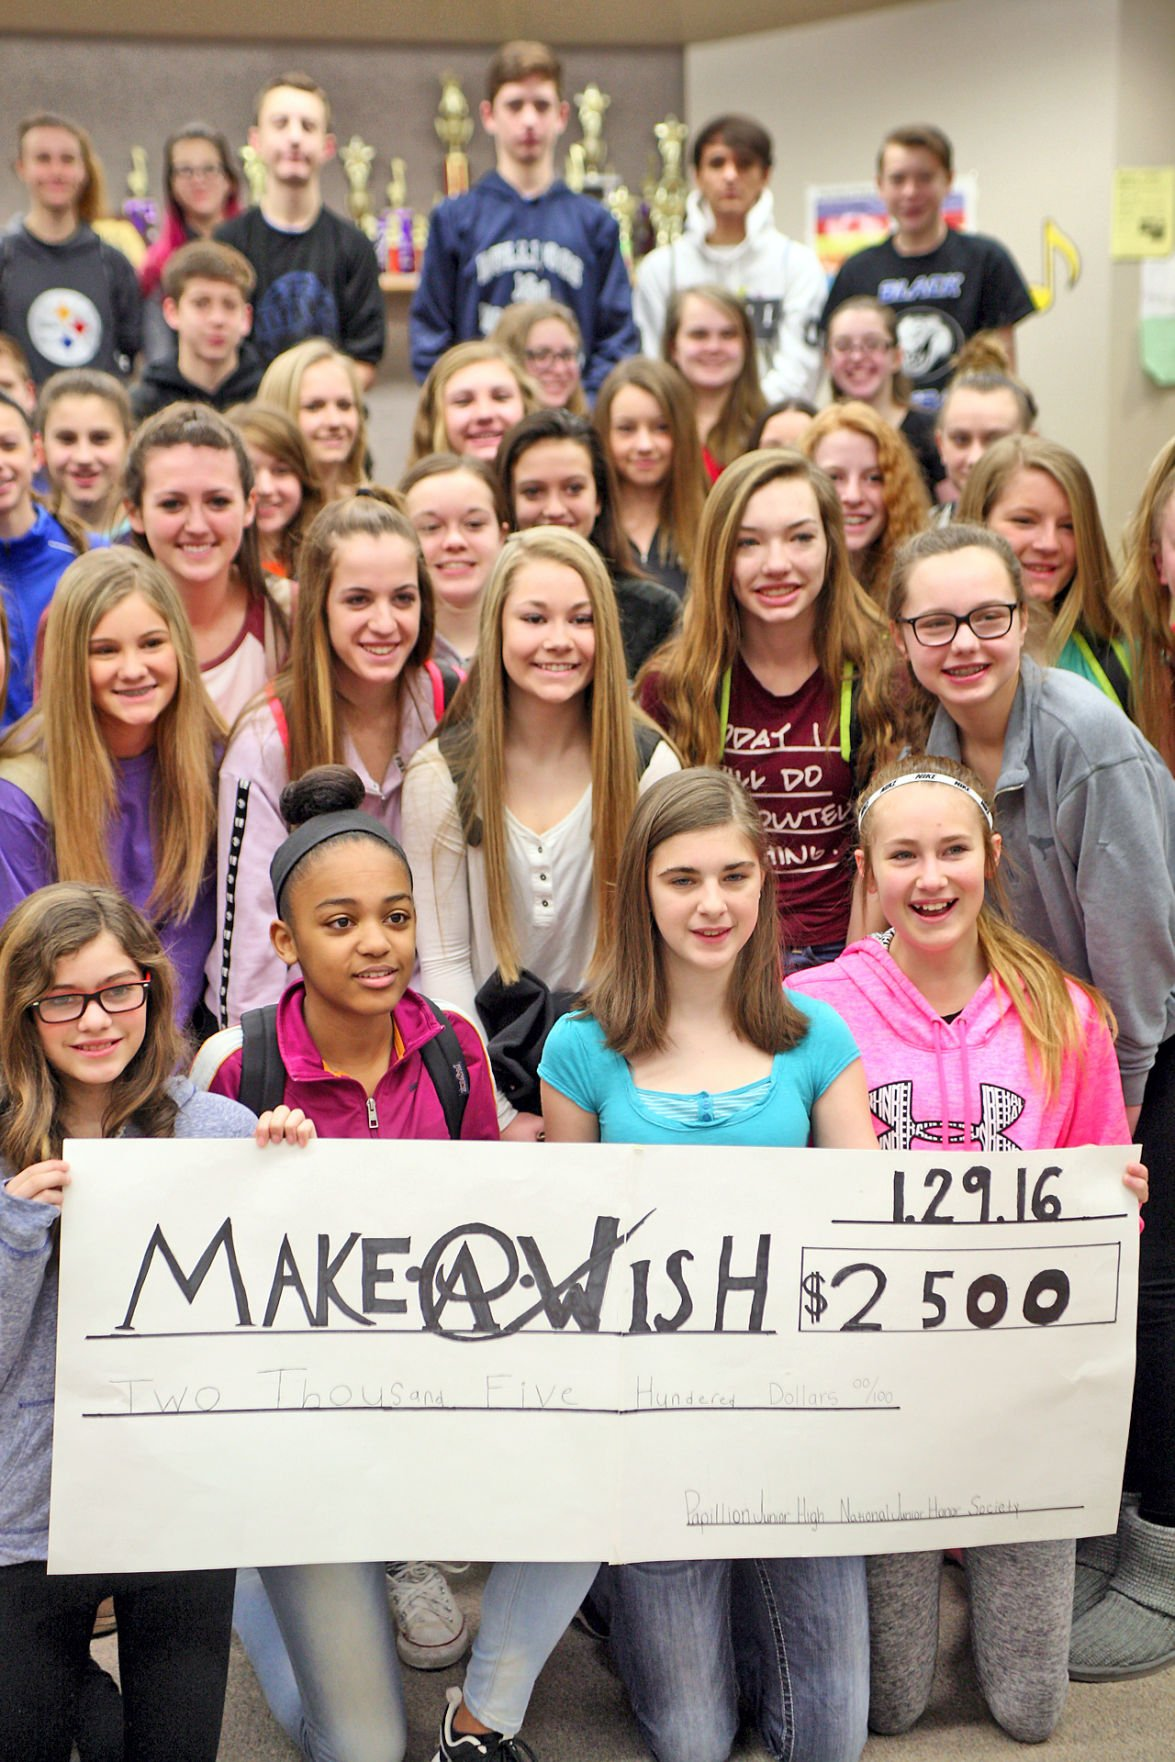 Students grant shopping spree through Make-A-Wish